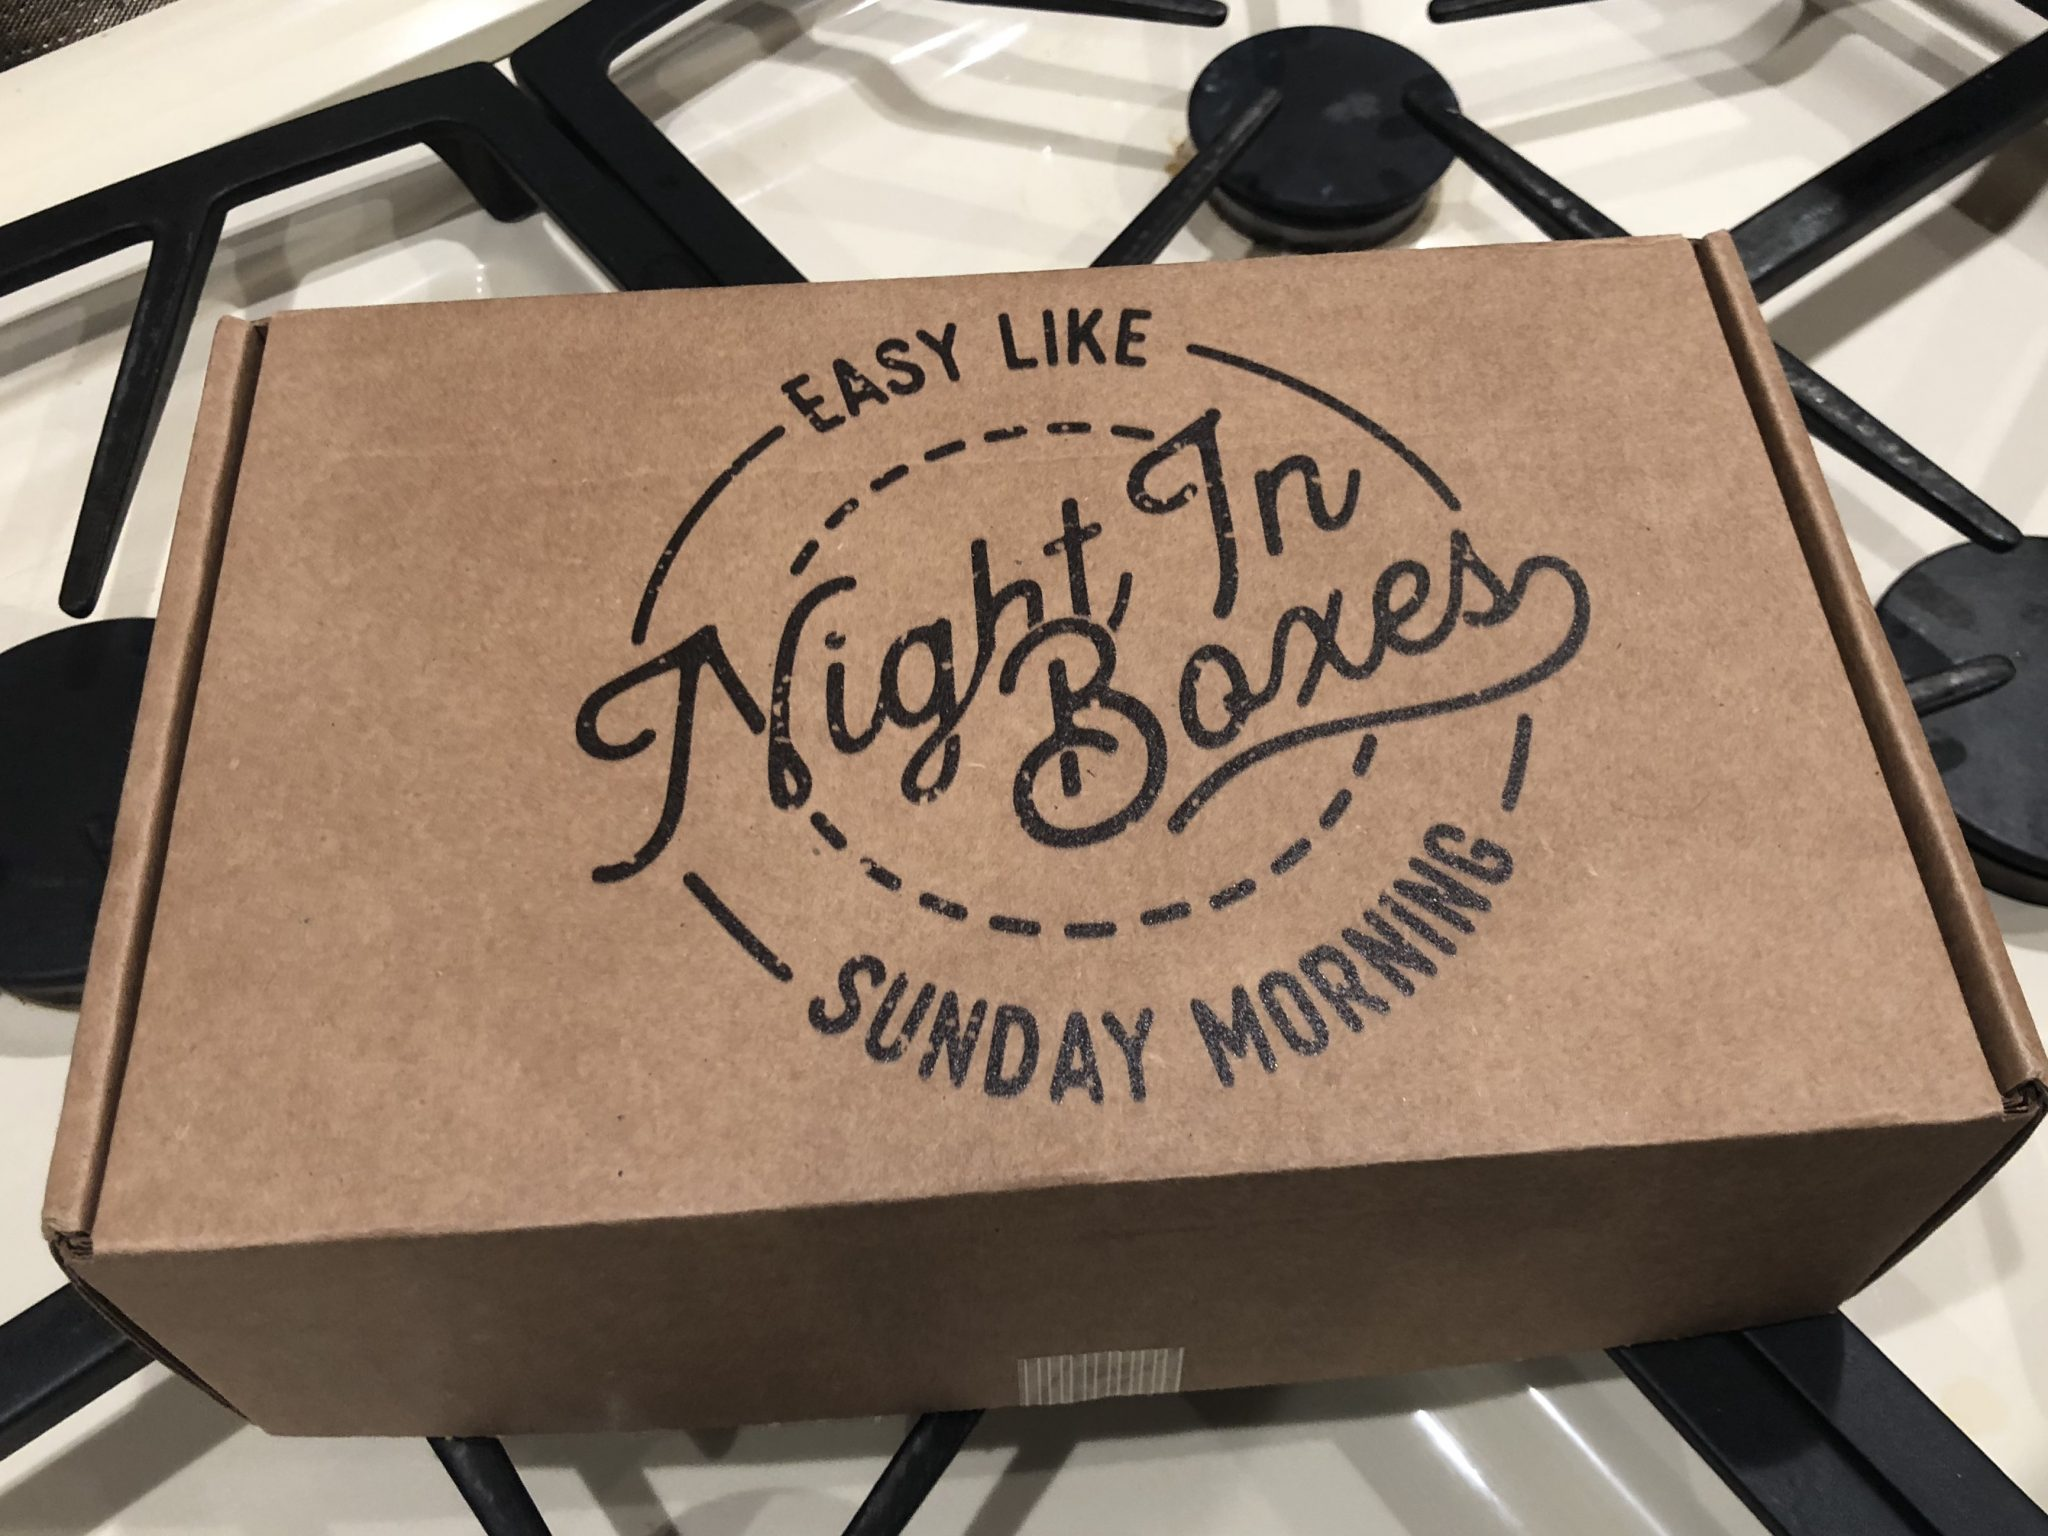 Date Night In a Box Review | Easy Like Sunday Morning ...